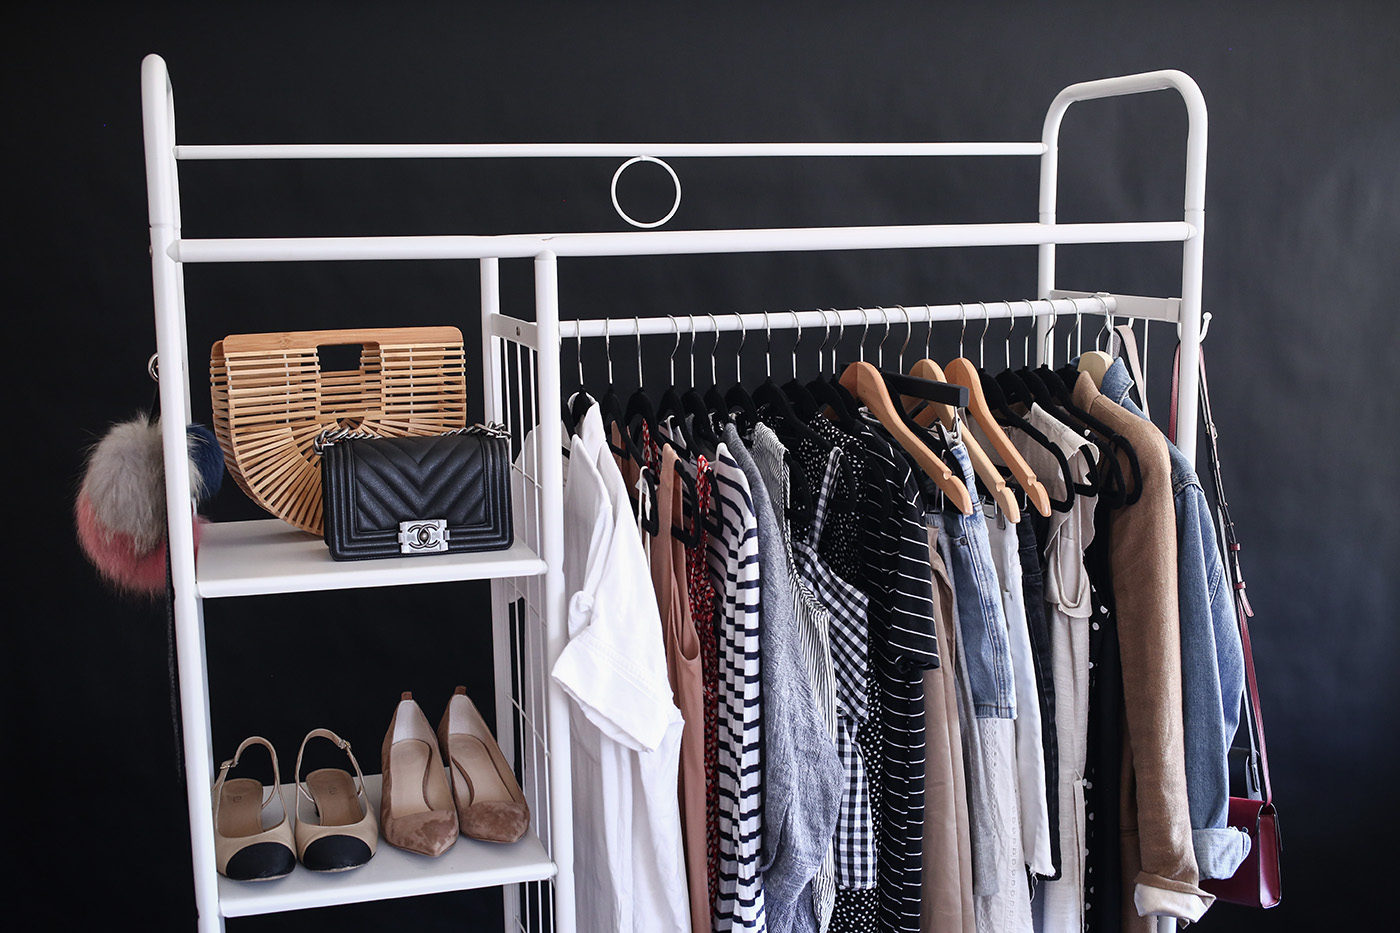 30x30 capsule wardrobe spring summer outfits